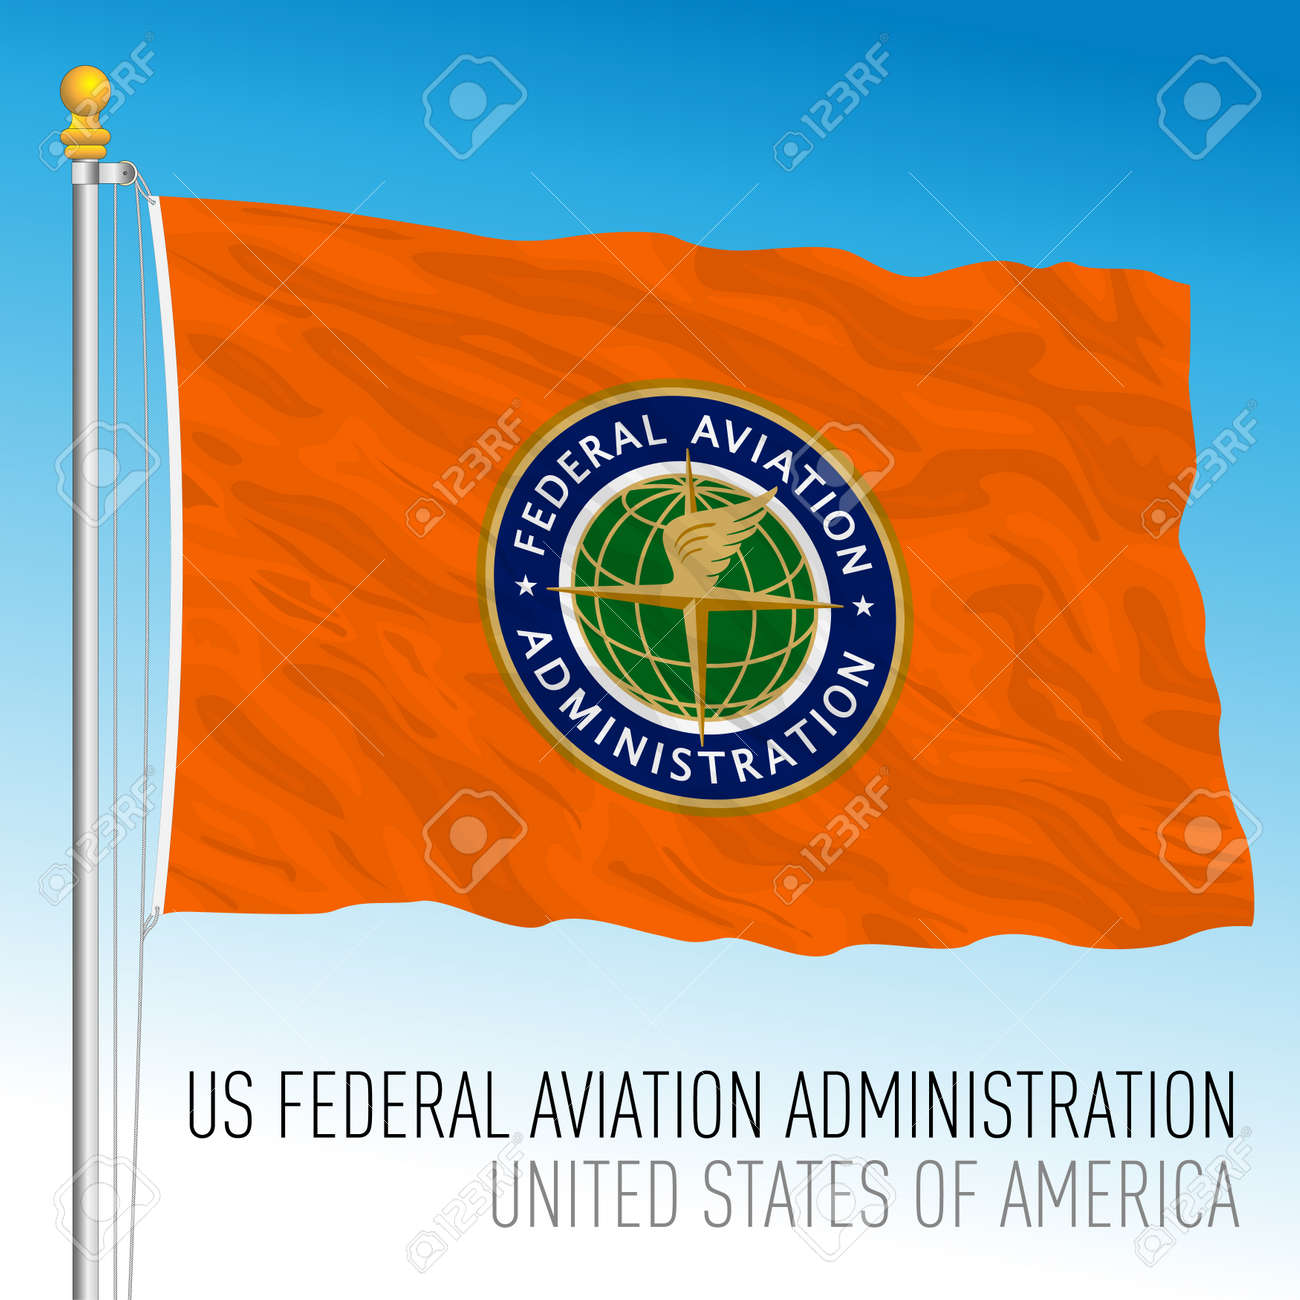 US Federal Aviation Administration flag, United States of America, vector illustration - 173306133